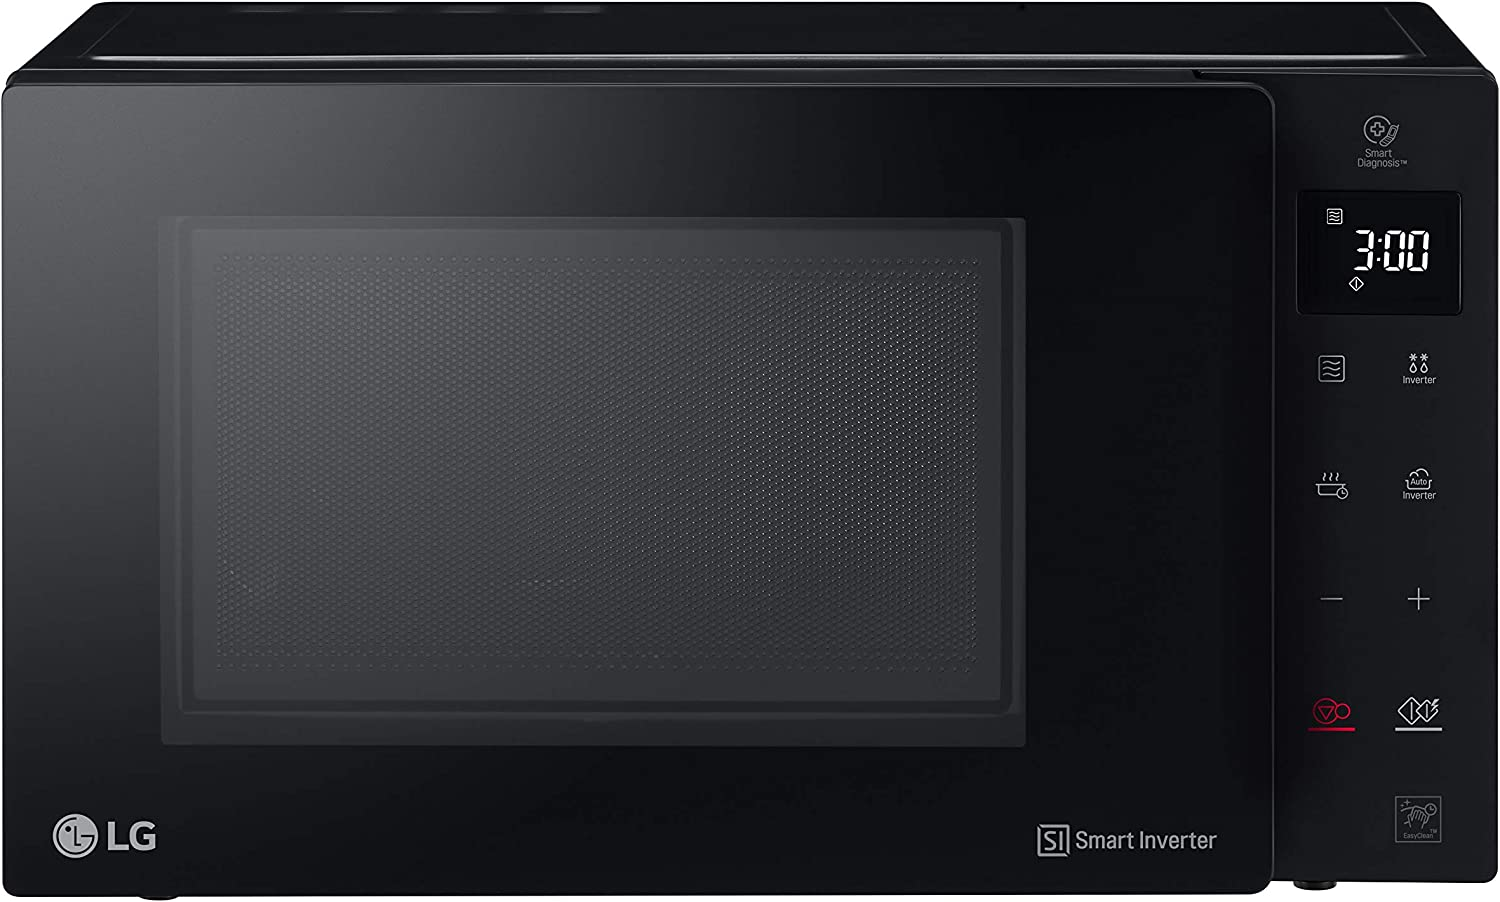 LG MH6535GIB Microondas Grill Smart Inverter Microondas 1000 W, Grill 900 W, Micro+Grill 1450 W, 25 litros de capacidad, Display LED, Plato interior 292 mm, Color Negro